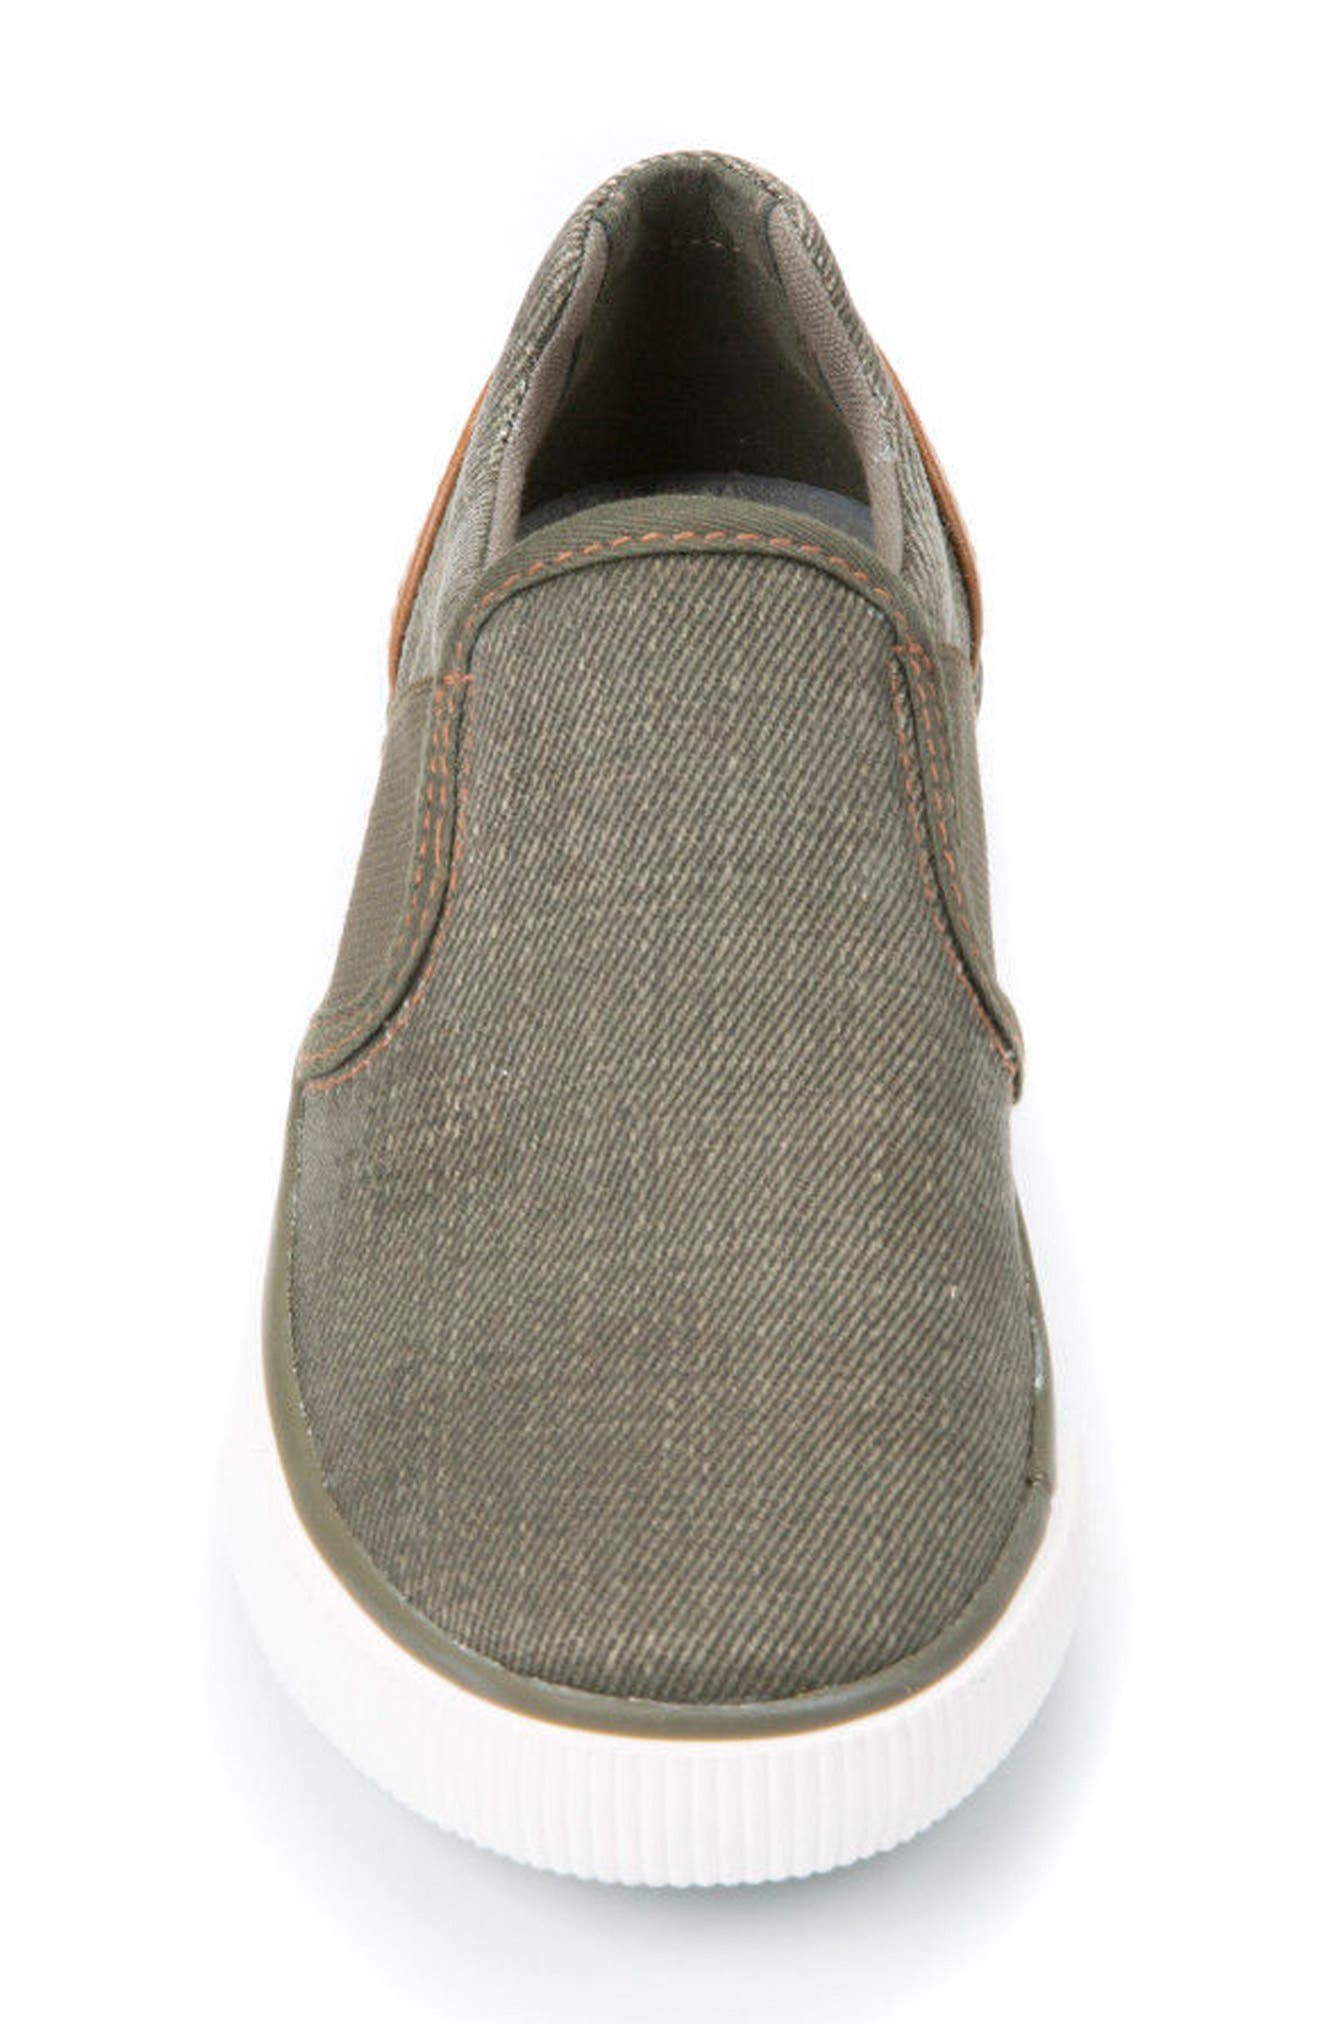 Kilwi Slip-On Sneaker,                             Alternate thumbnail 4, color,                             MILITARY/ LIGHT BROWN